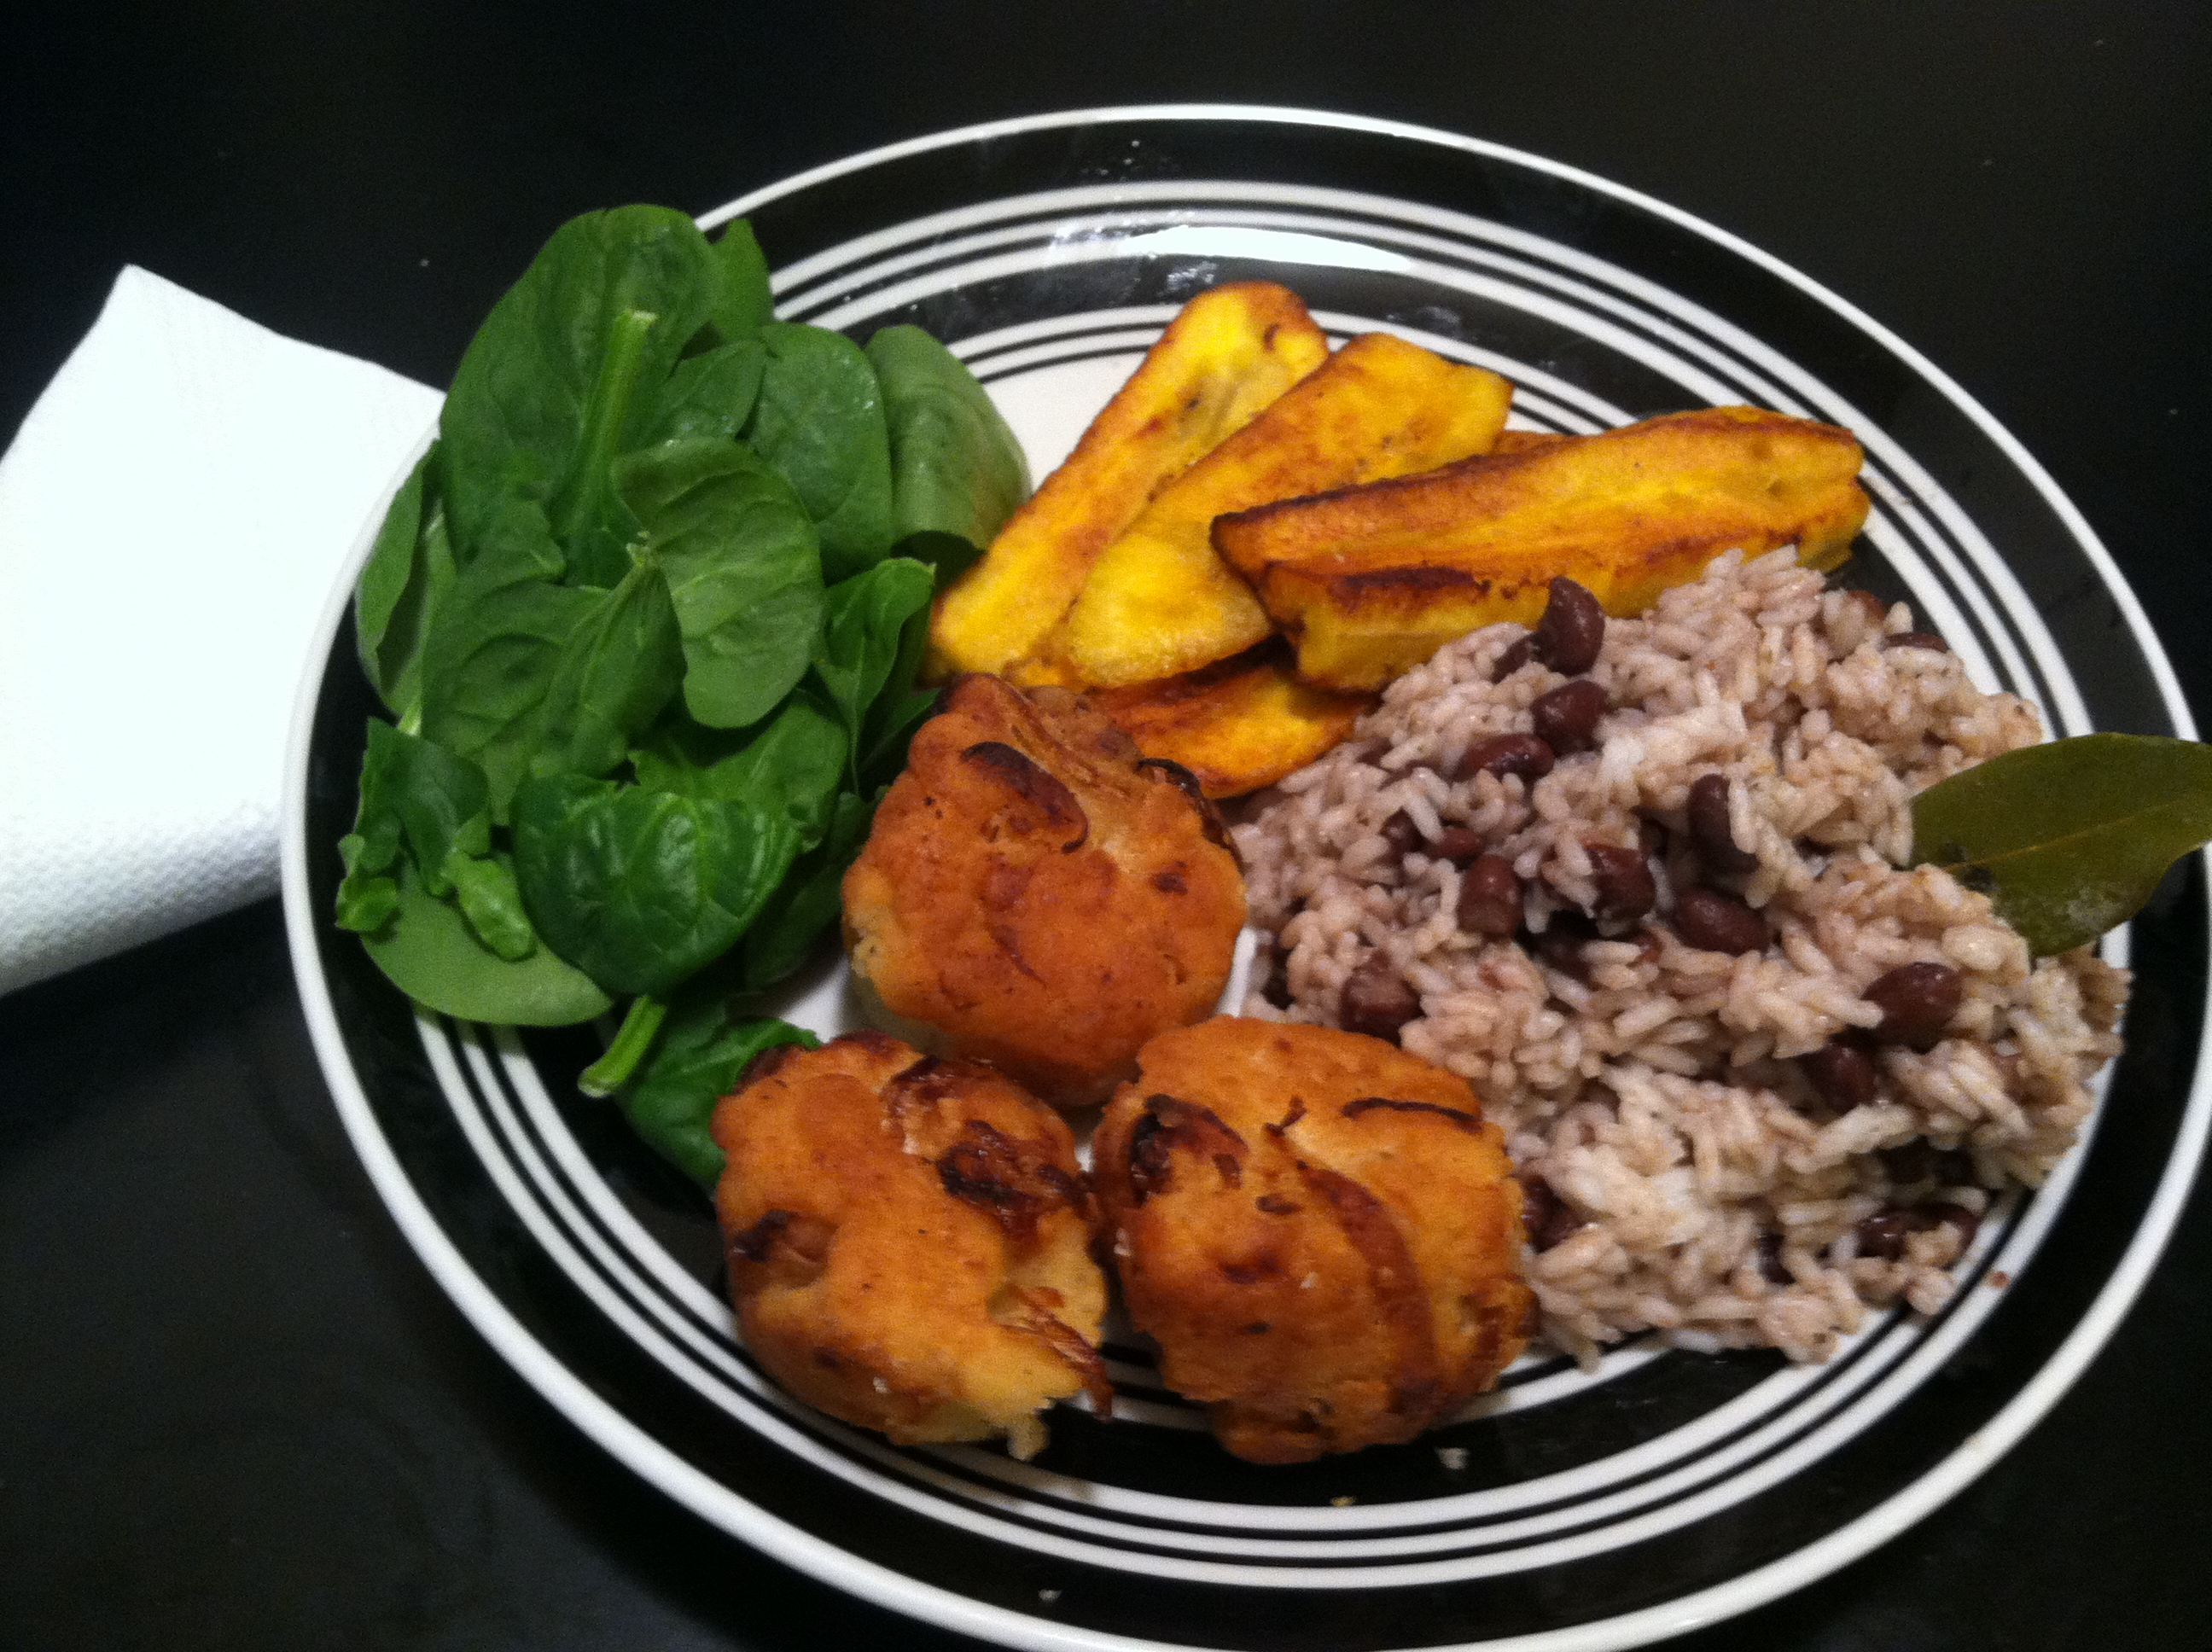 Caribbean food goes vegan ria lives well for About caribbean cuisine